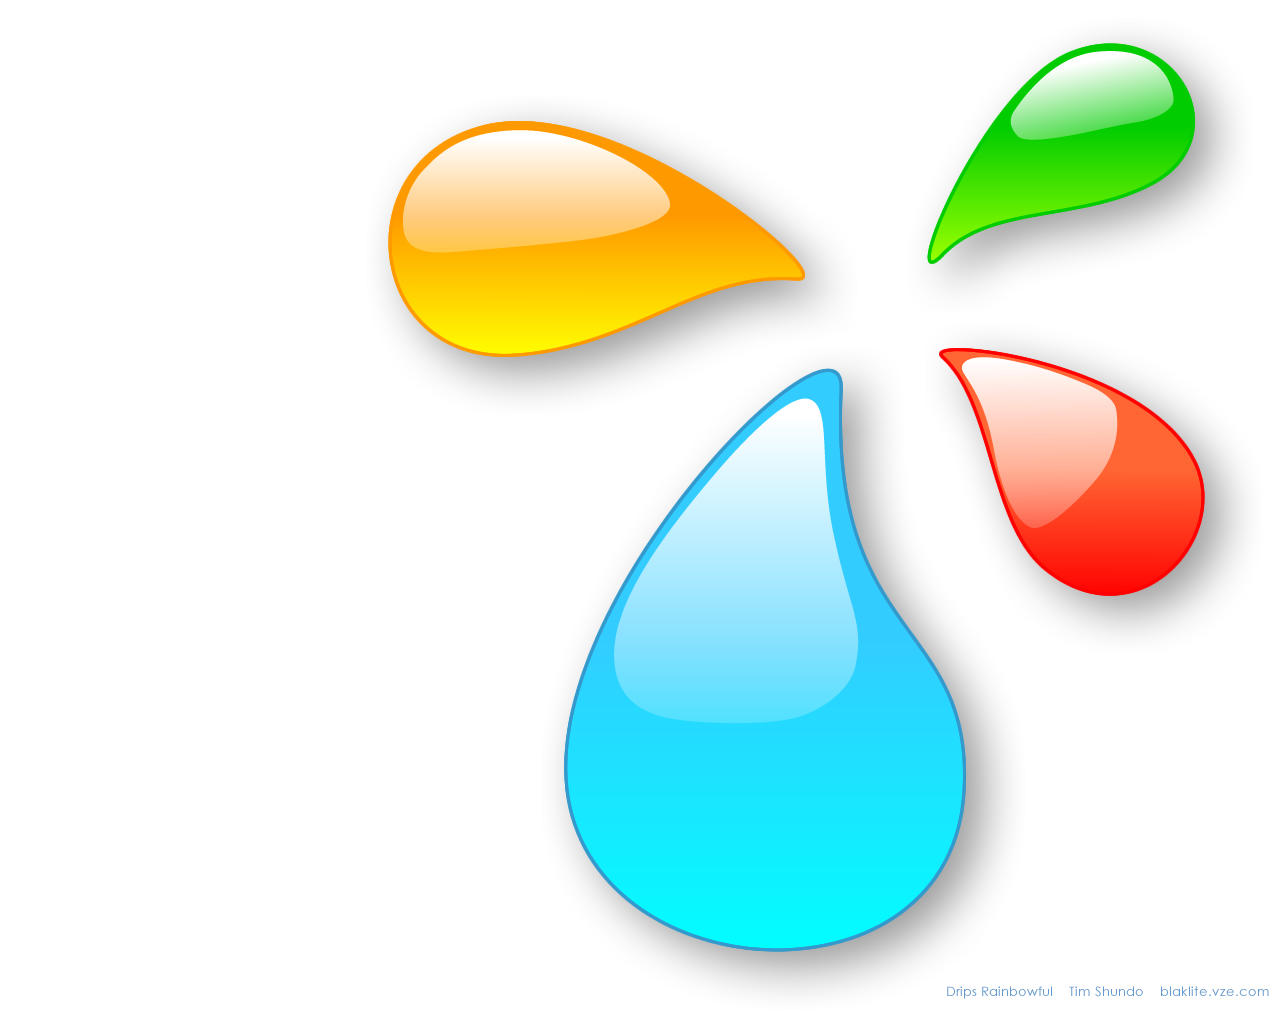 Drips 3.0 - glass OSX by BlakliteGraphics